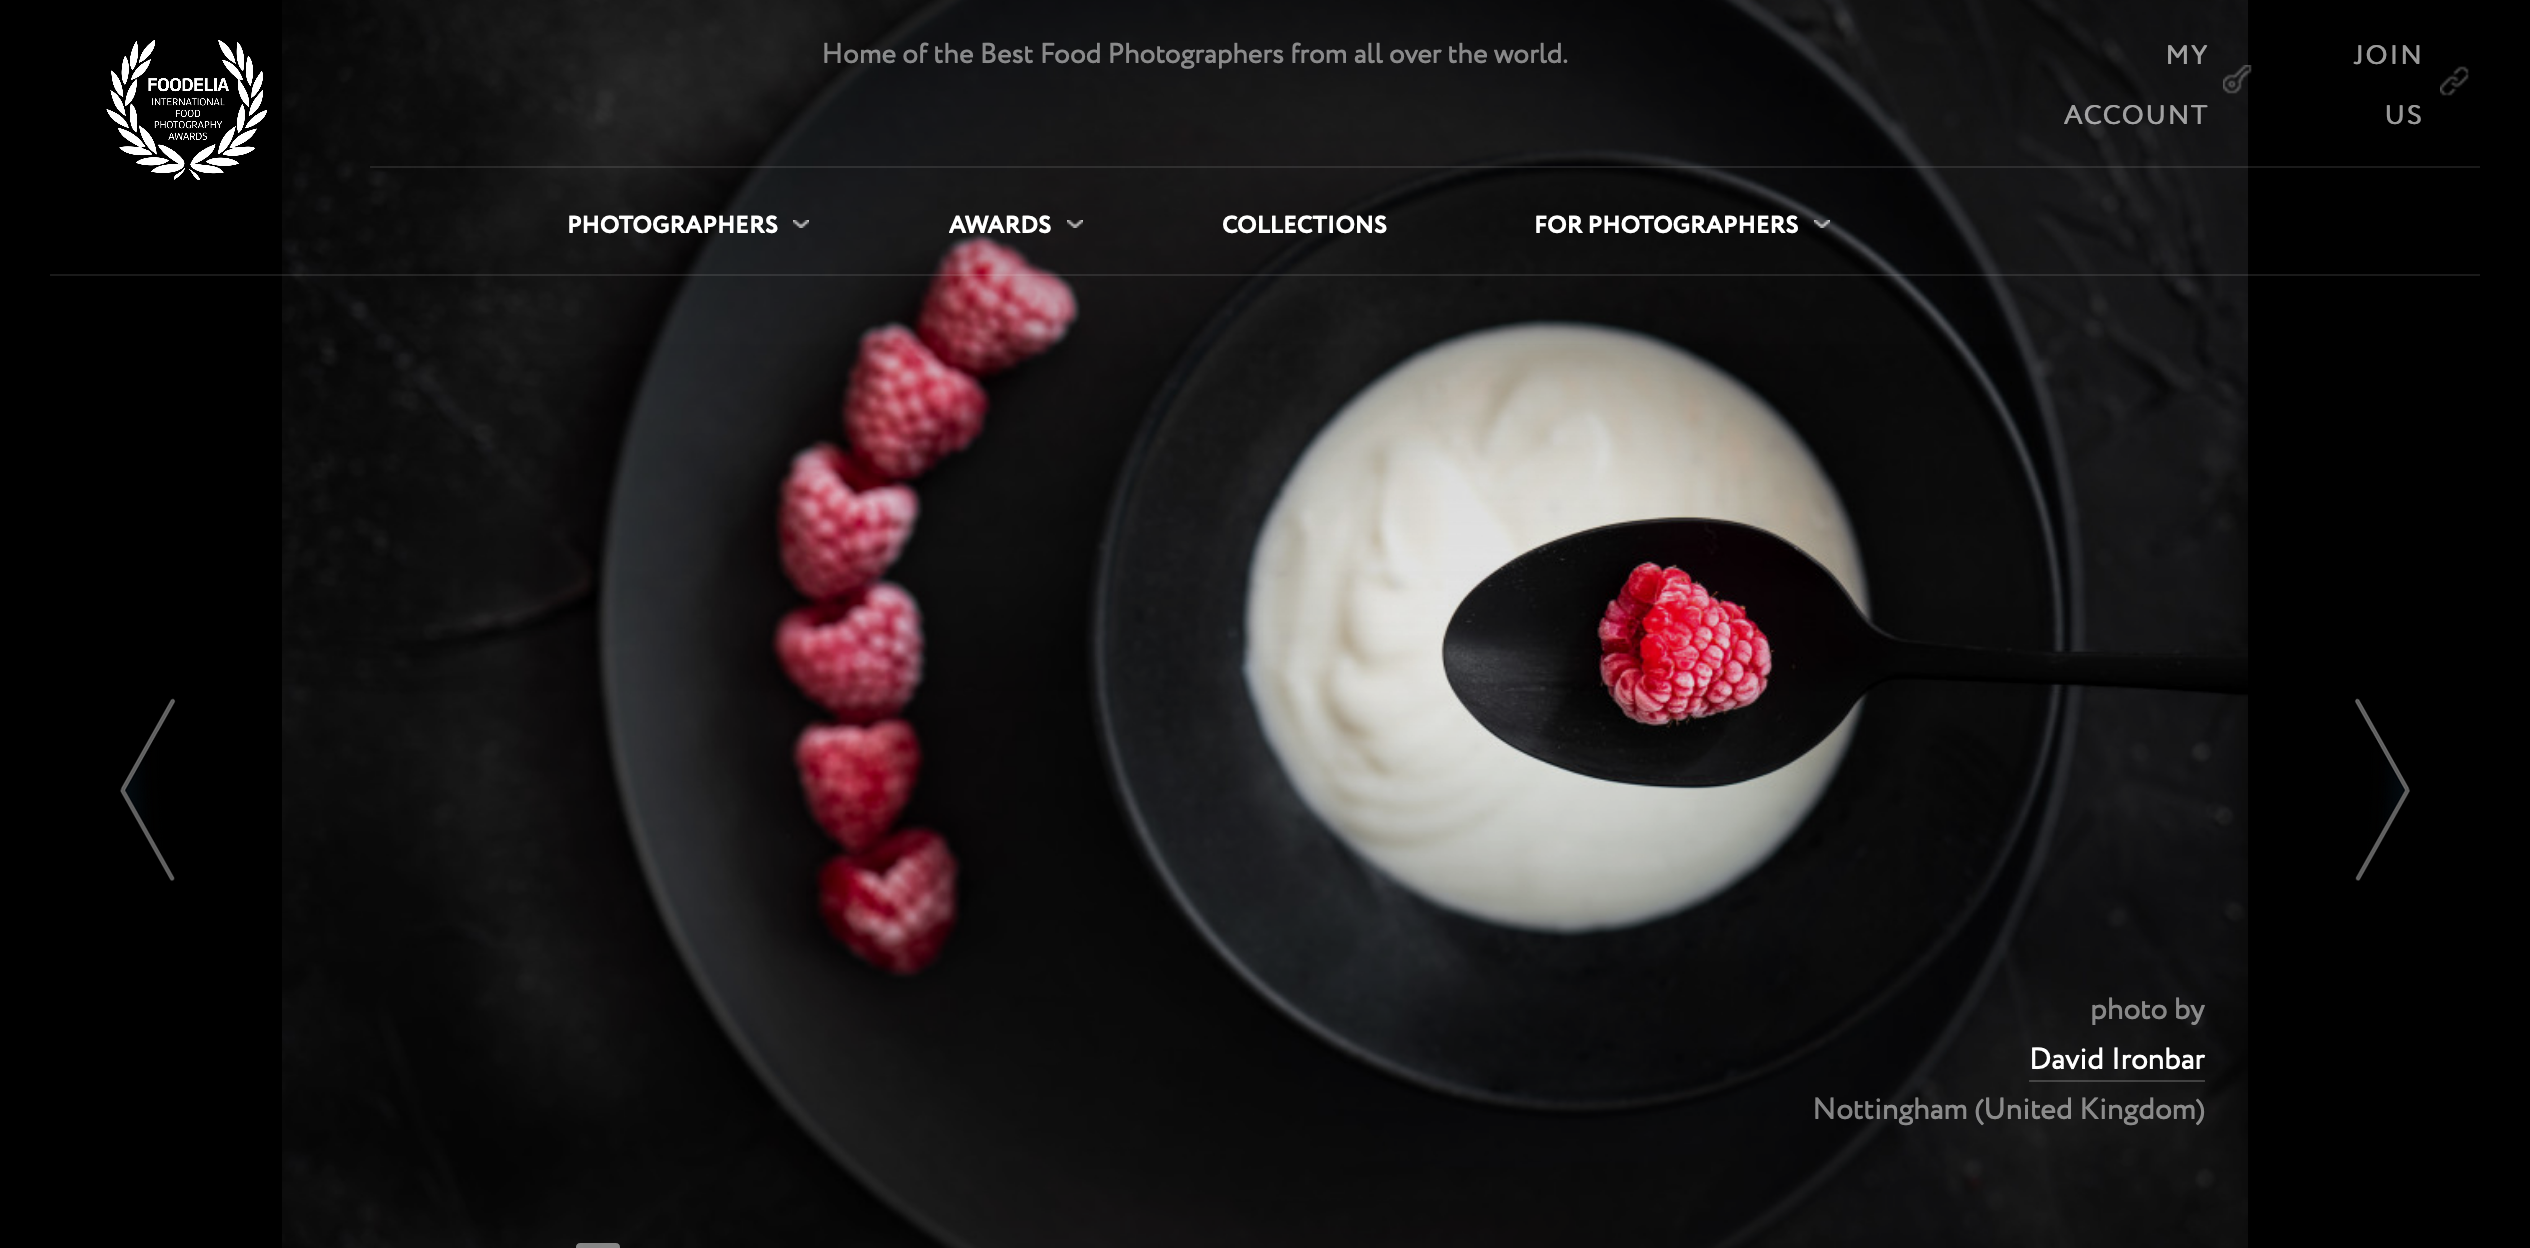 food photography awards contest, foodella competitions, phoode